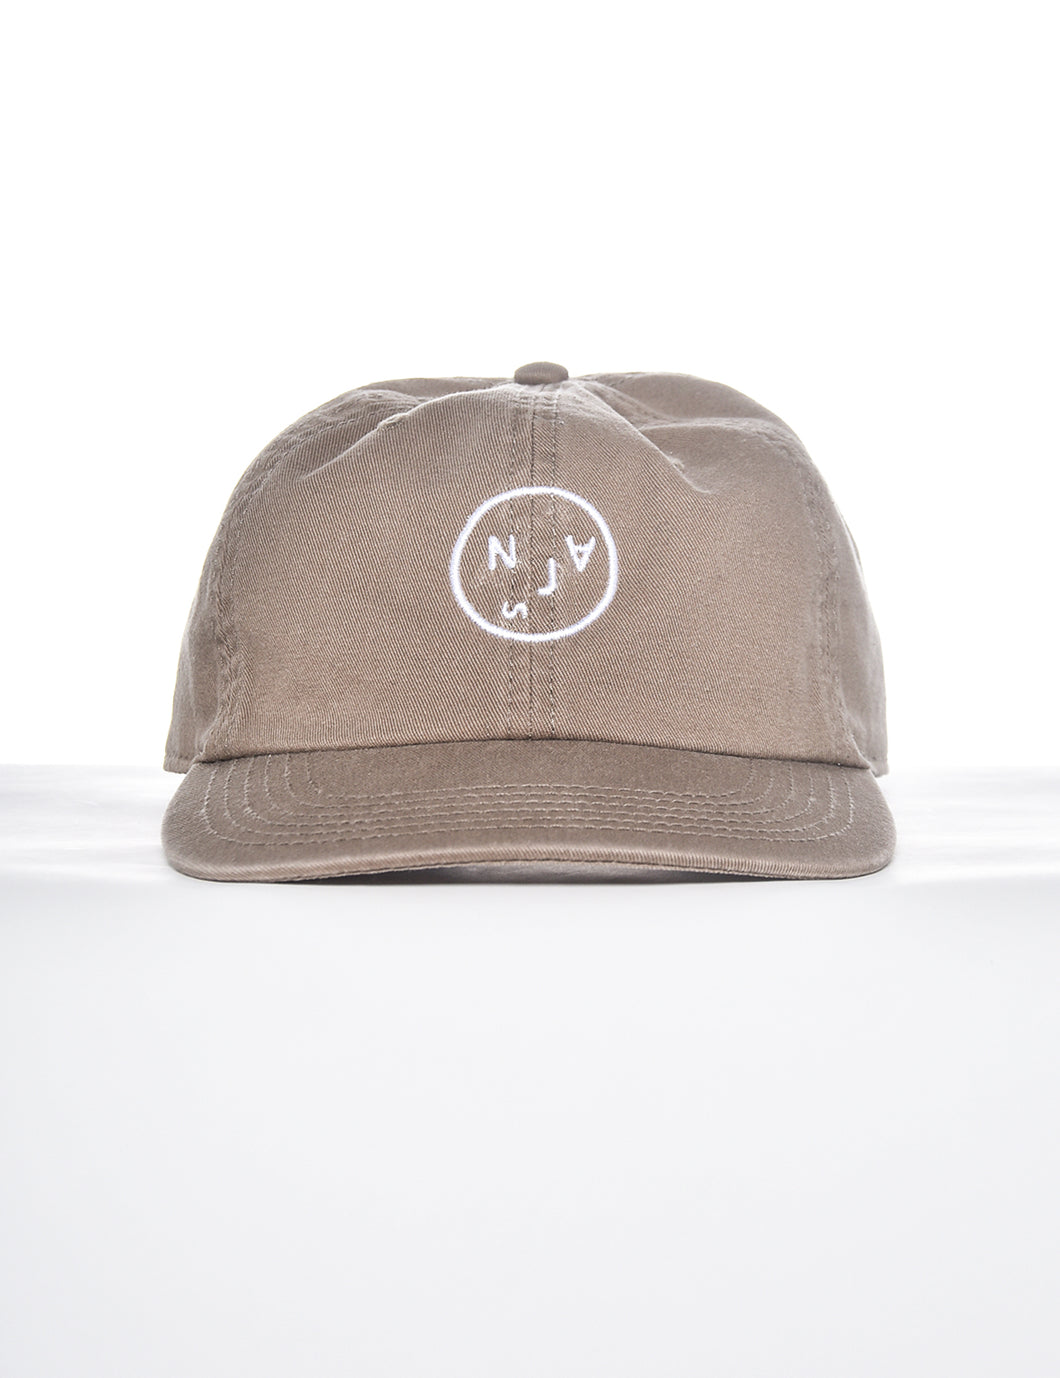 "NAJS ""FACE"" CAP (WASHED BEIGE)"